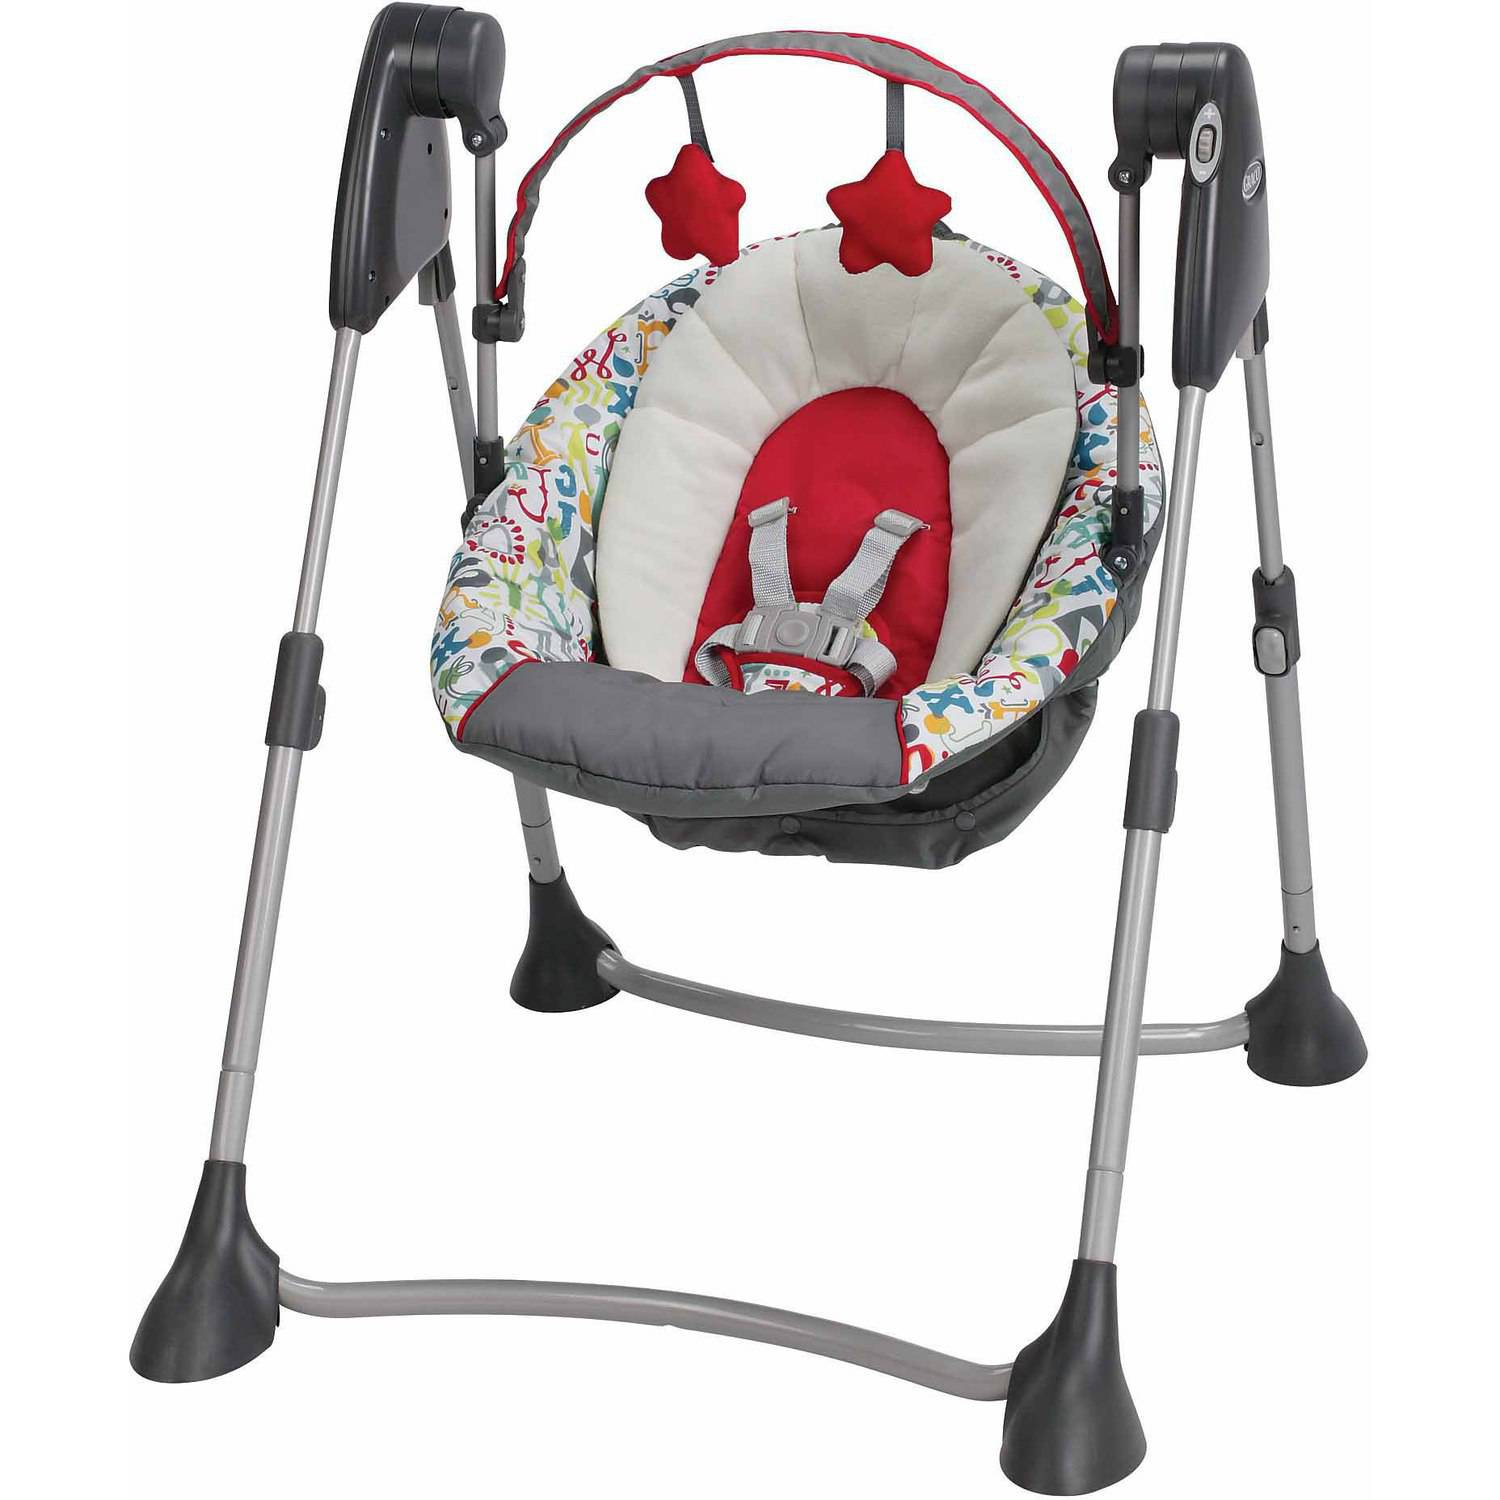 Graco Swing By Me Infant Swing, Typo